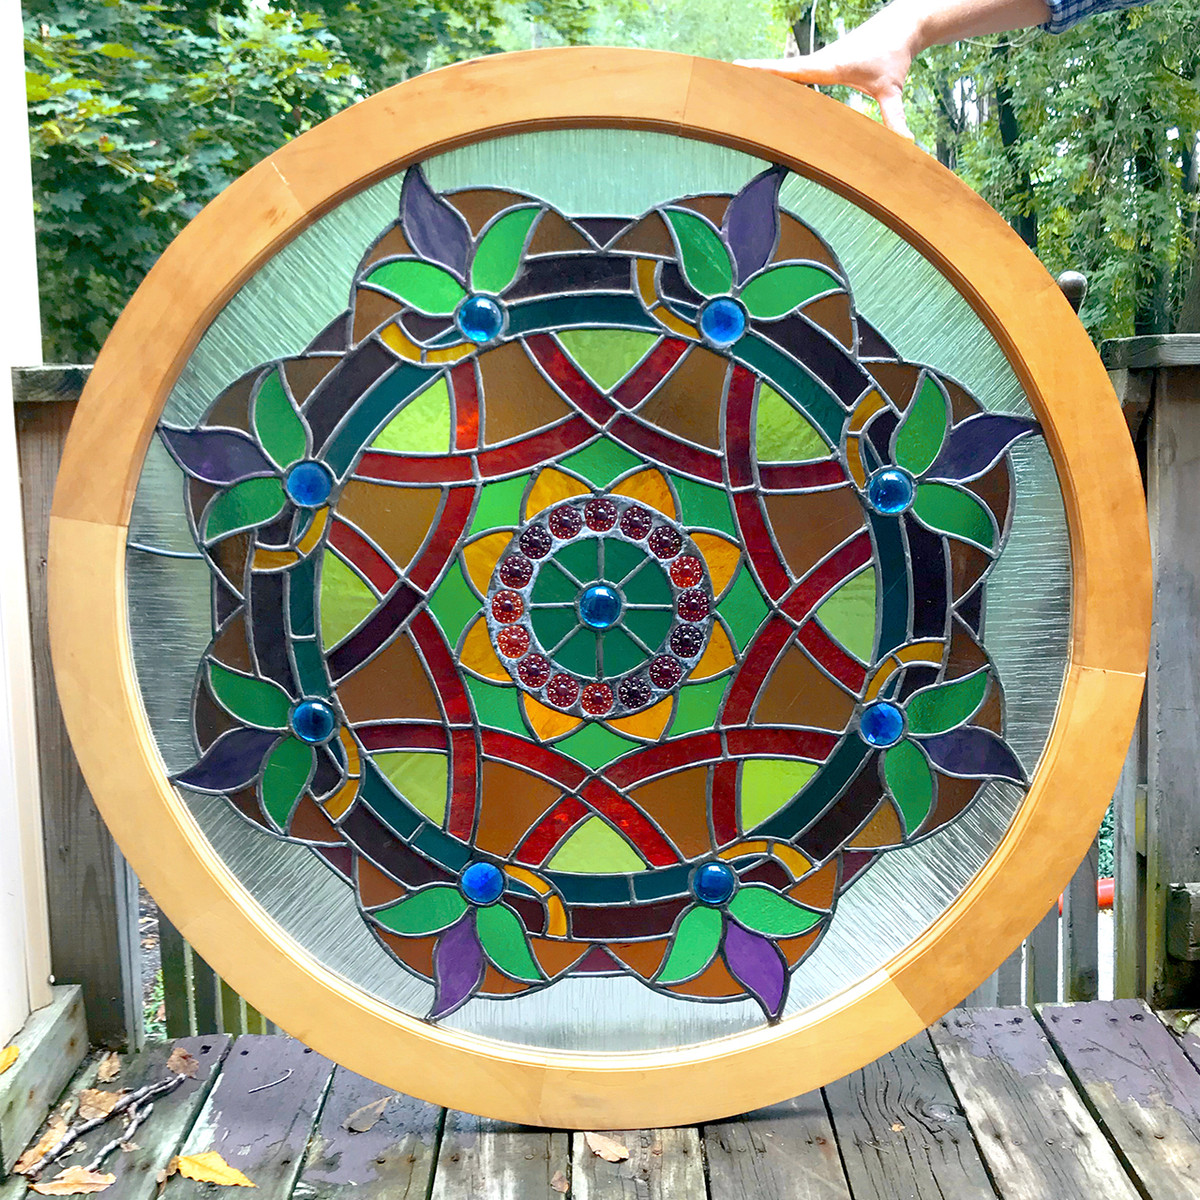 G18073 - Antique Circular Stained Glass Window